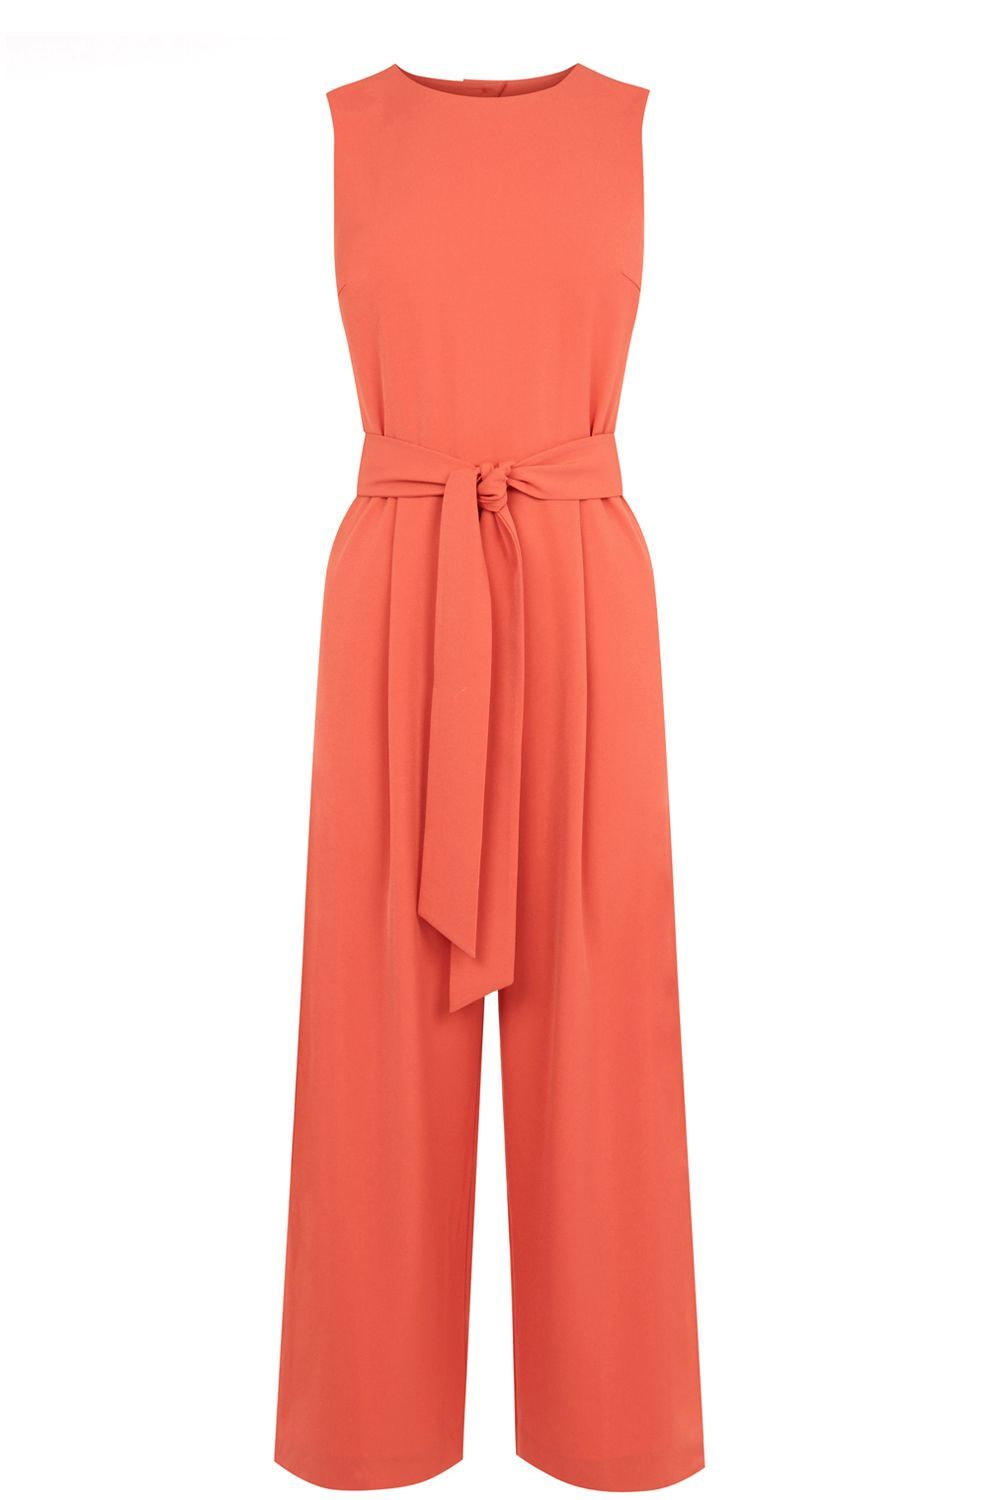 Open Back Jumpsuit, Coral - length: standard; neckline: round neck; fit: tailored/fitted; pattern: plain; sleeve style: sleeveless; waist detail: belted waist/tie at waist/drawstring; predominant colour: coral; occasions: evening, occasion; fibres: polyester/polyamide - stretch; sleeve length: sleeveless; style: jumpsuit; pattern type: fabric; texture group: jersey - stretchy/drapey; season: s/s 2016; wardrobe: event